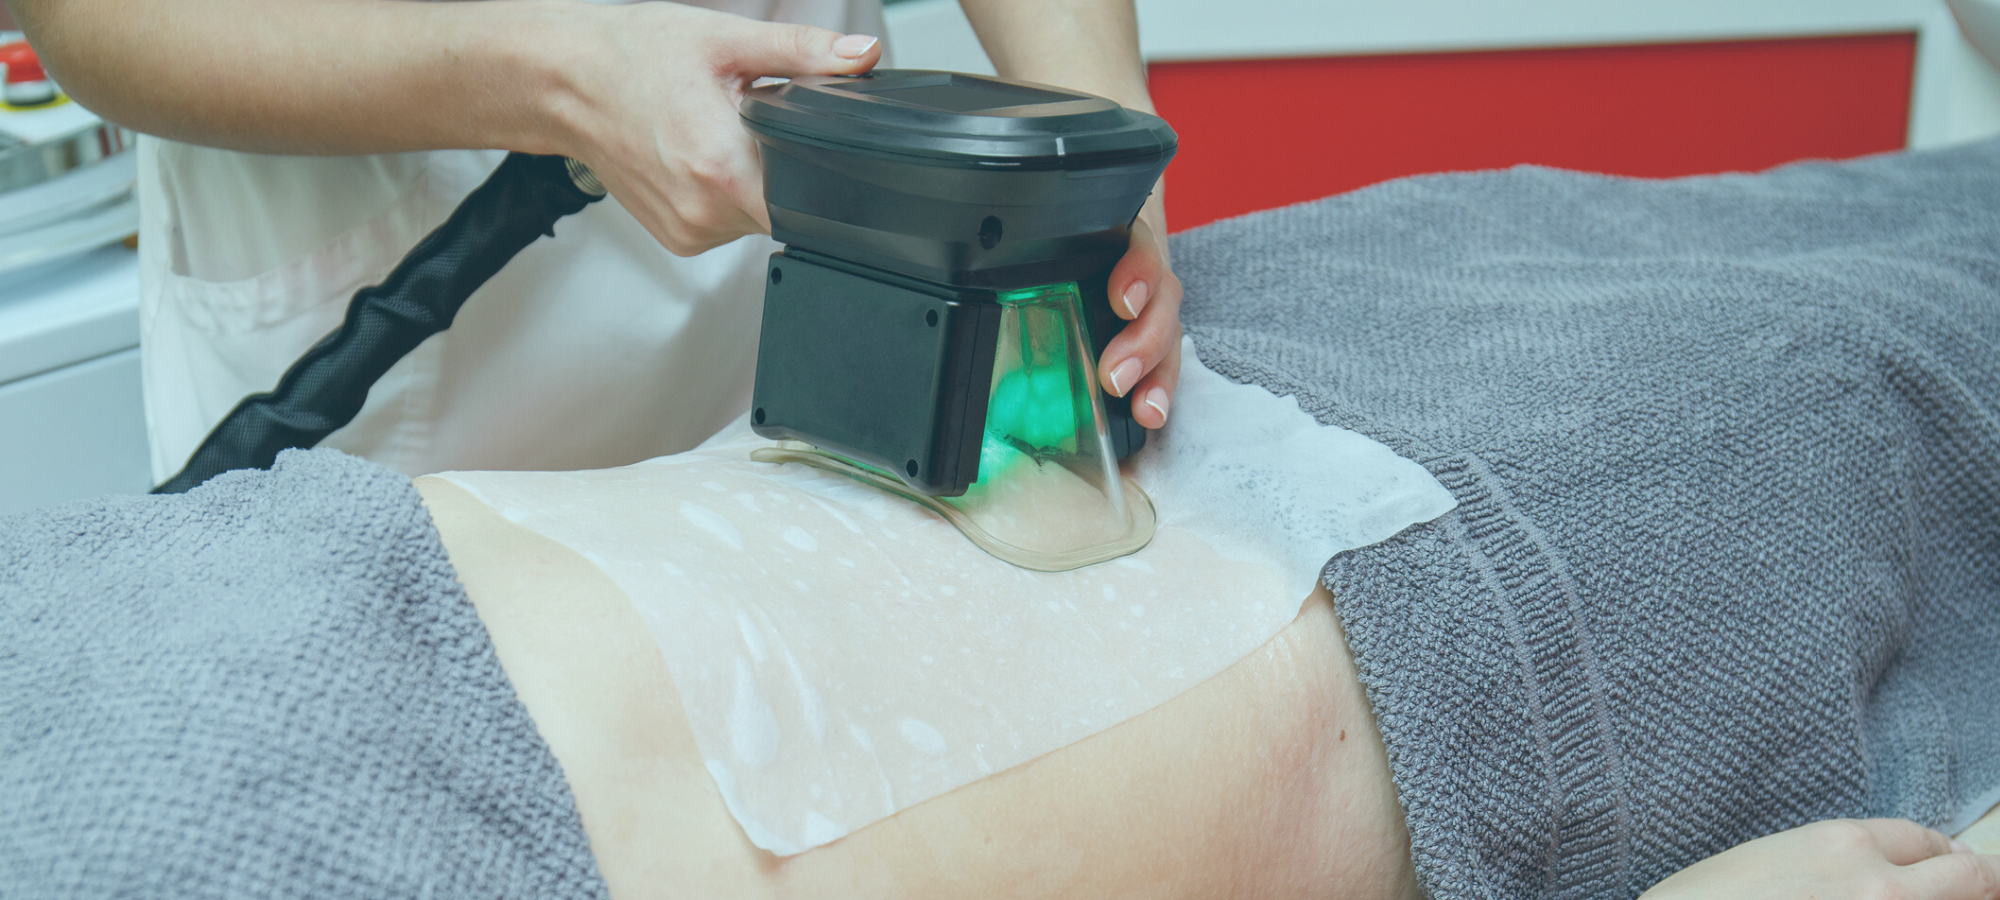 WarmSculpting vs. CoolSculpting - Which is better at removing fat?